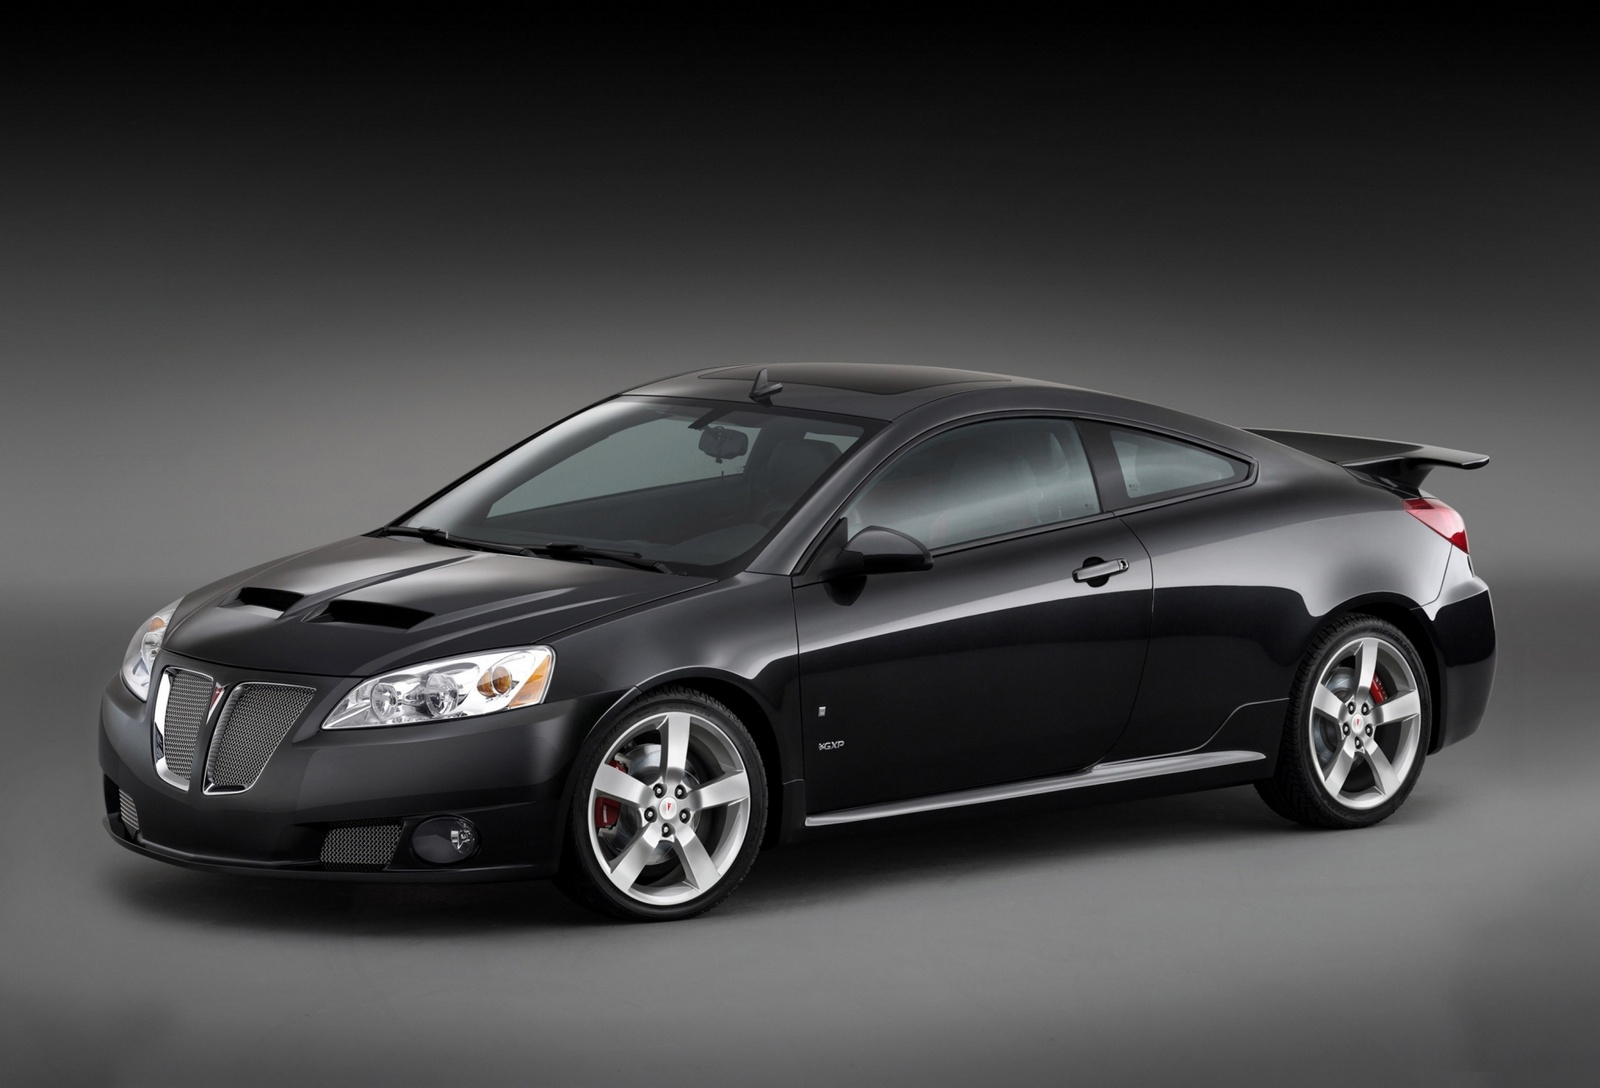 2009 pontiac g6 review cargurus. Black Bedroom Furniture Sets. Home Design Ideas